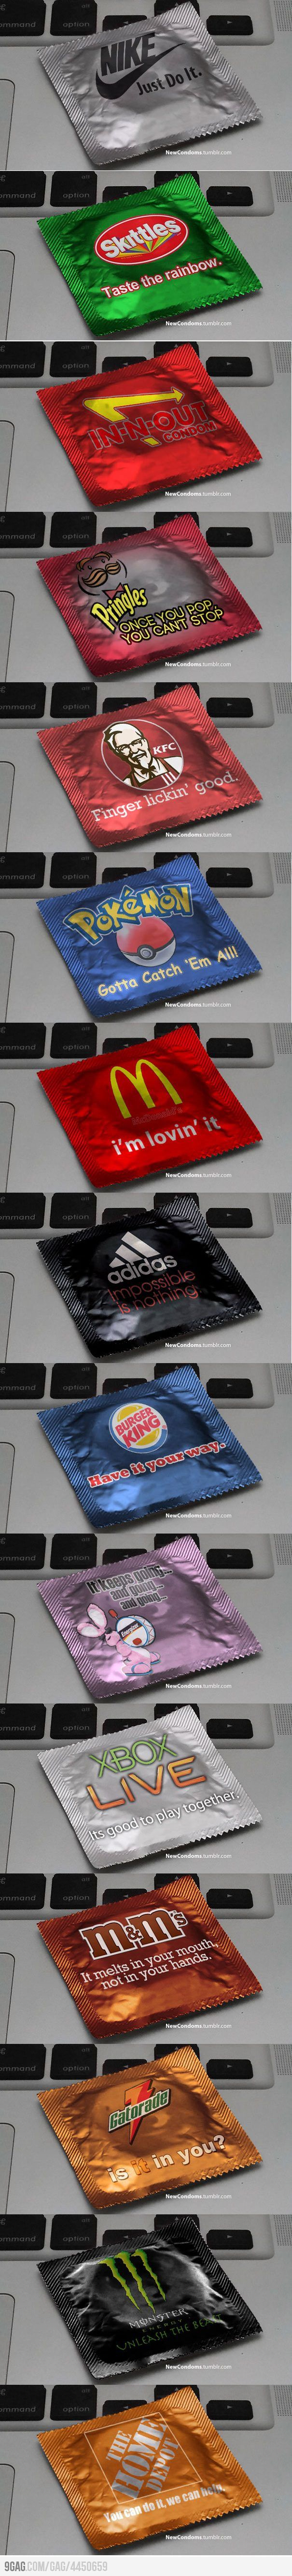 Just some Epic condoms...